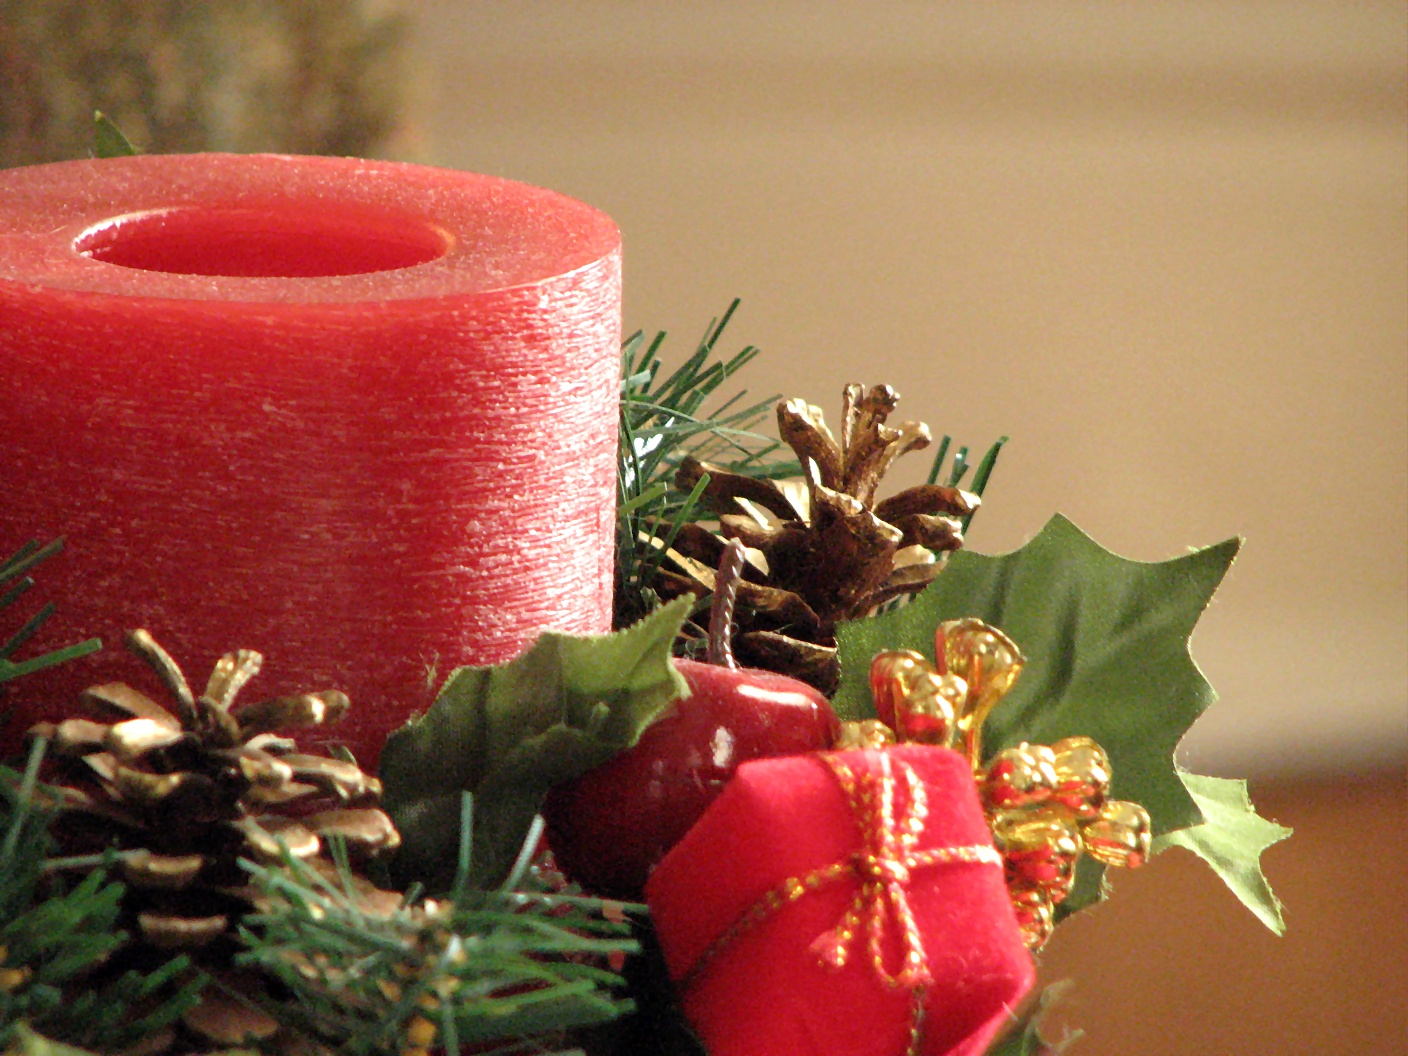 Closeup of a red Christmas candle, Candles, Christmas, Events, Gifts, HQ Photo